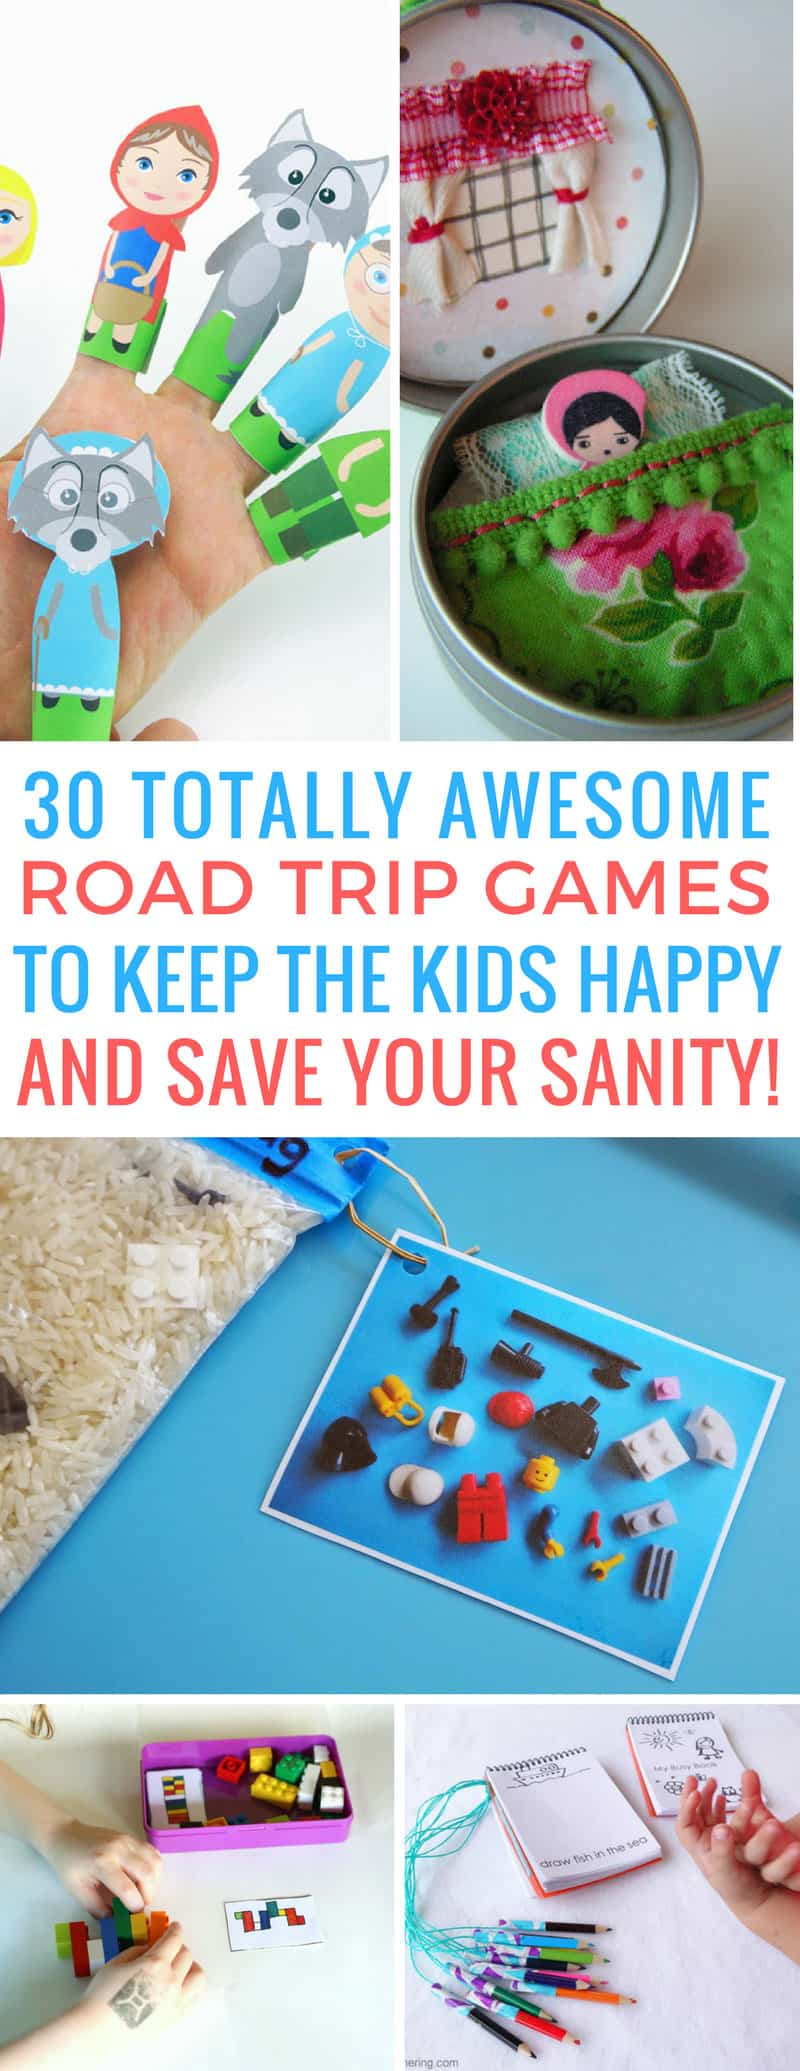 These road trip games for kids are priceless! Thanks for sharing!